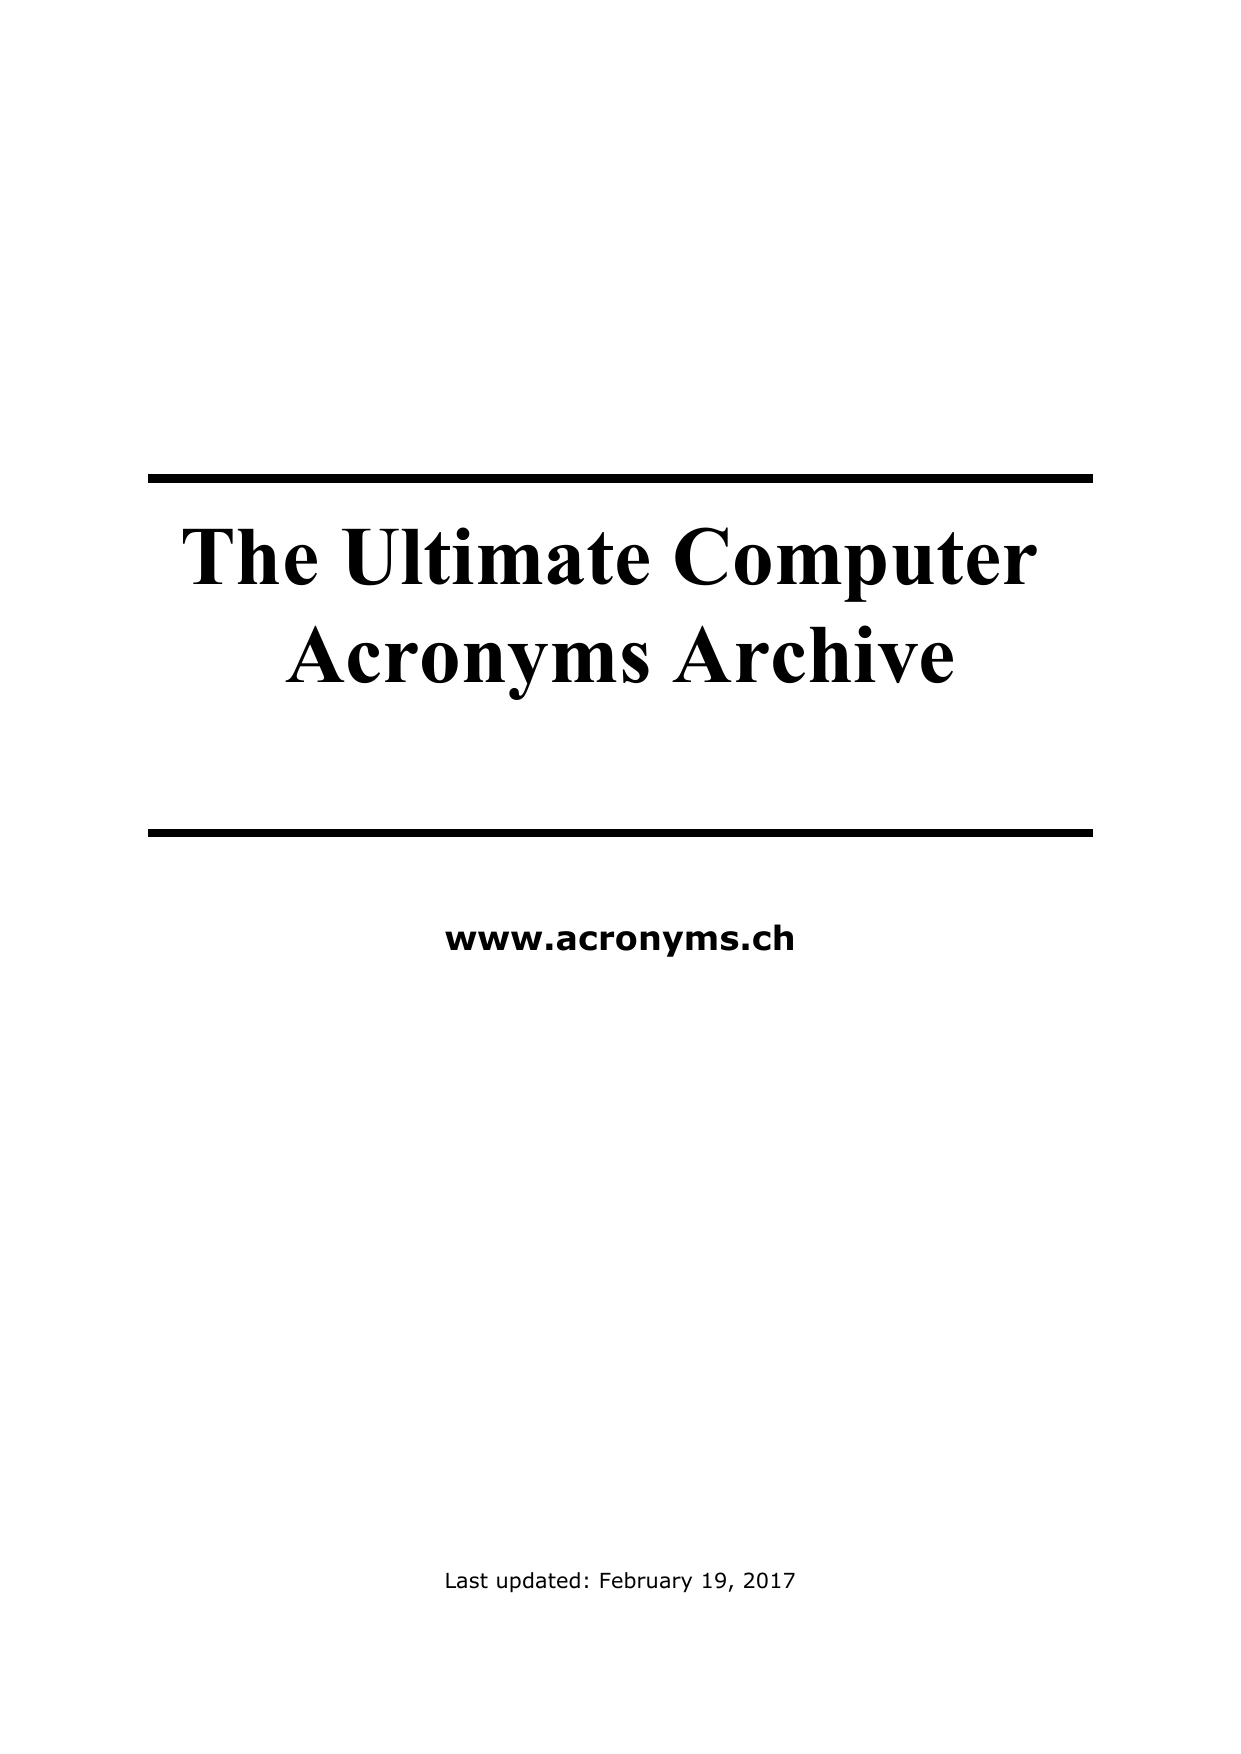 The Ultimate Computer Acronyms Archive